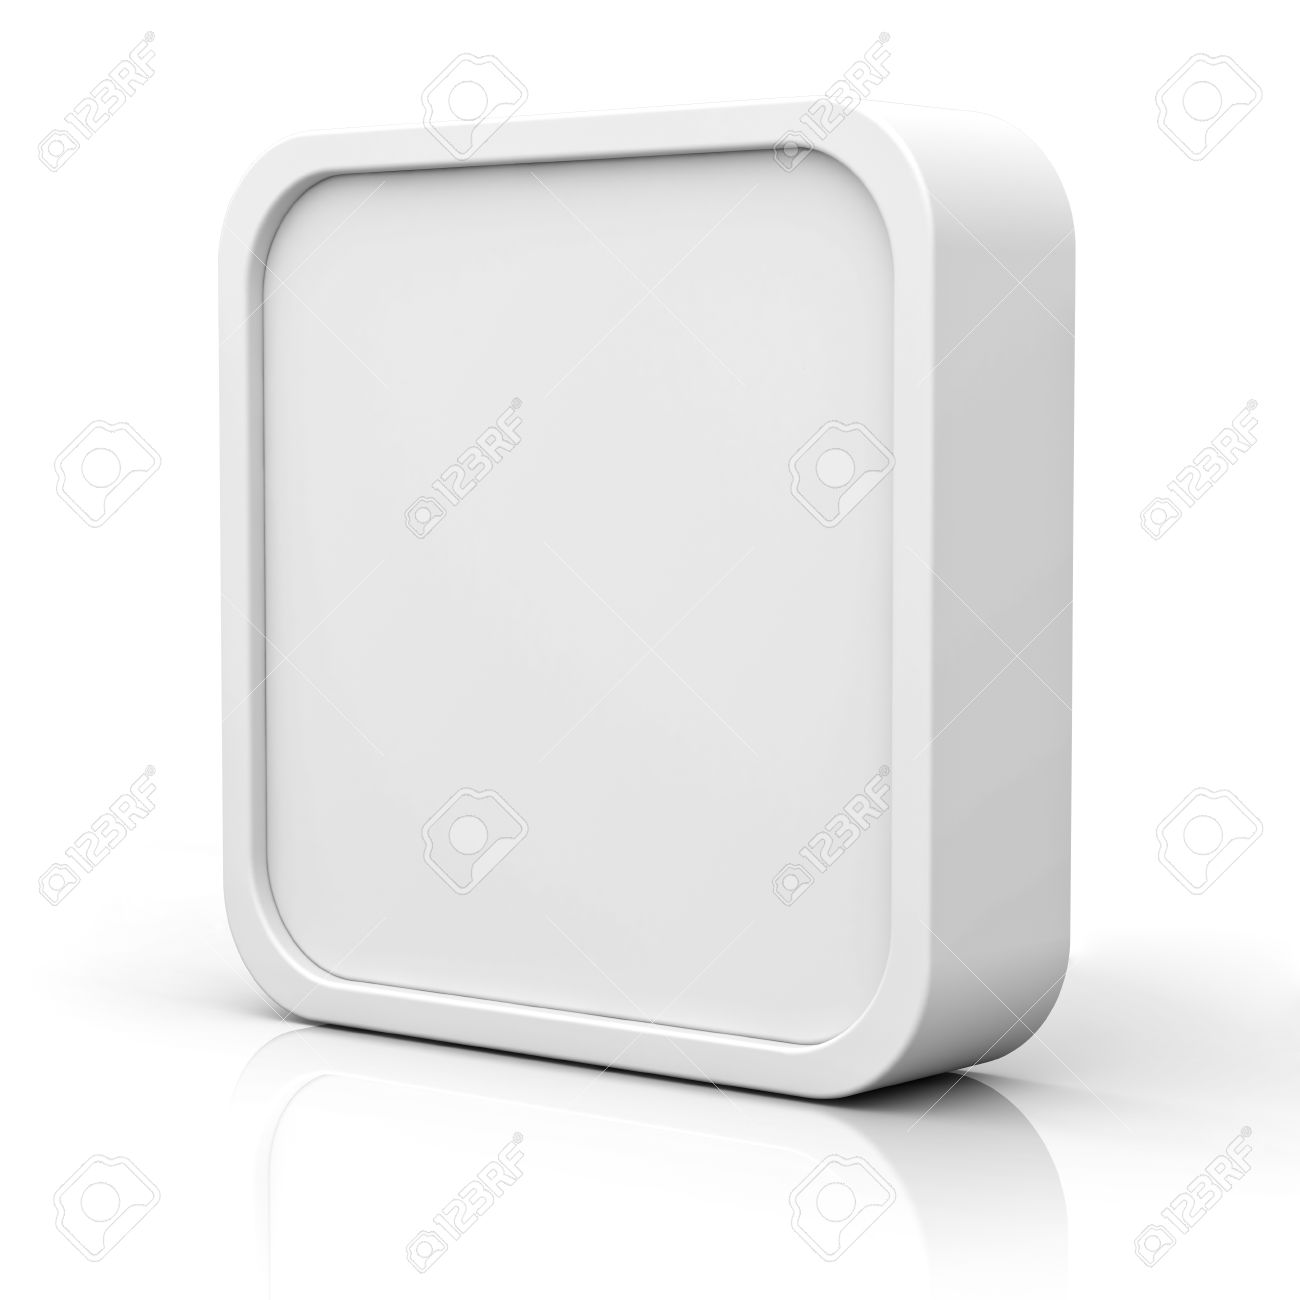 Blank 3d square button or frame over white background with reflection Stock Photo - 23798533